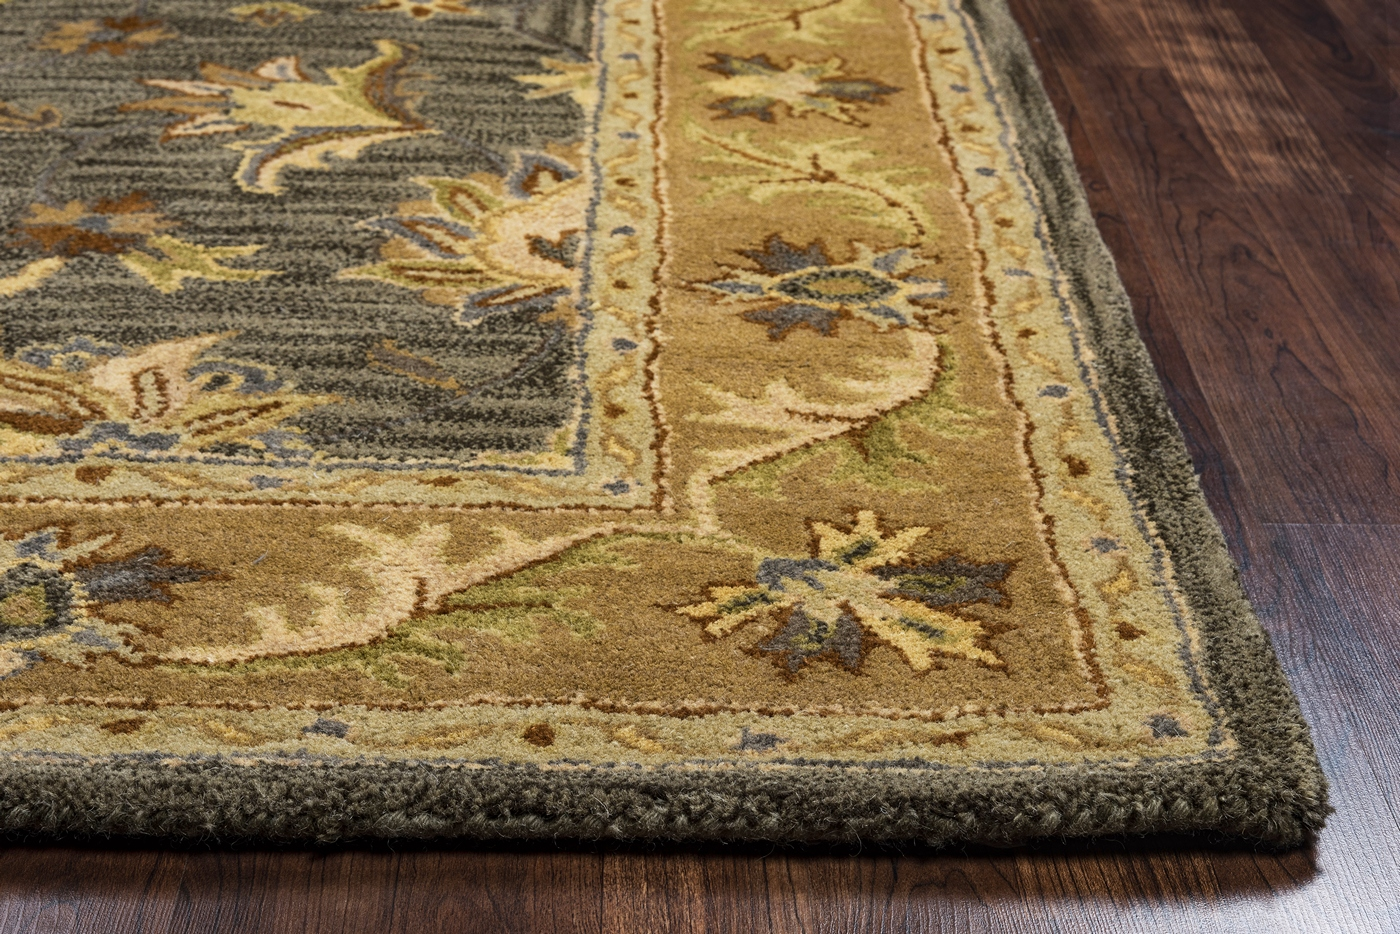 Grey Tan And Brown Area Rug: Valintino Bordered Vine Floral Wool Area Rug In Ivory